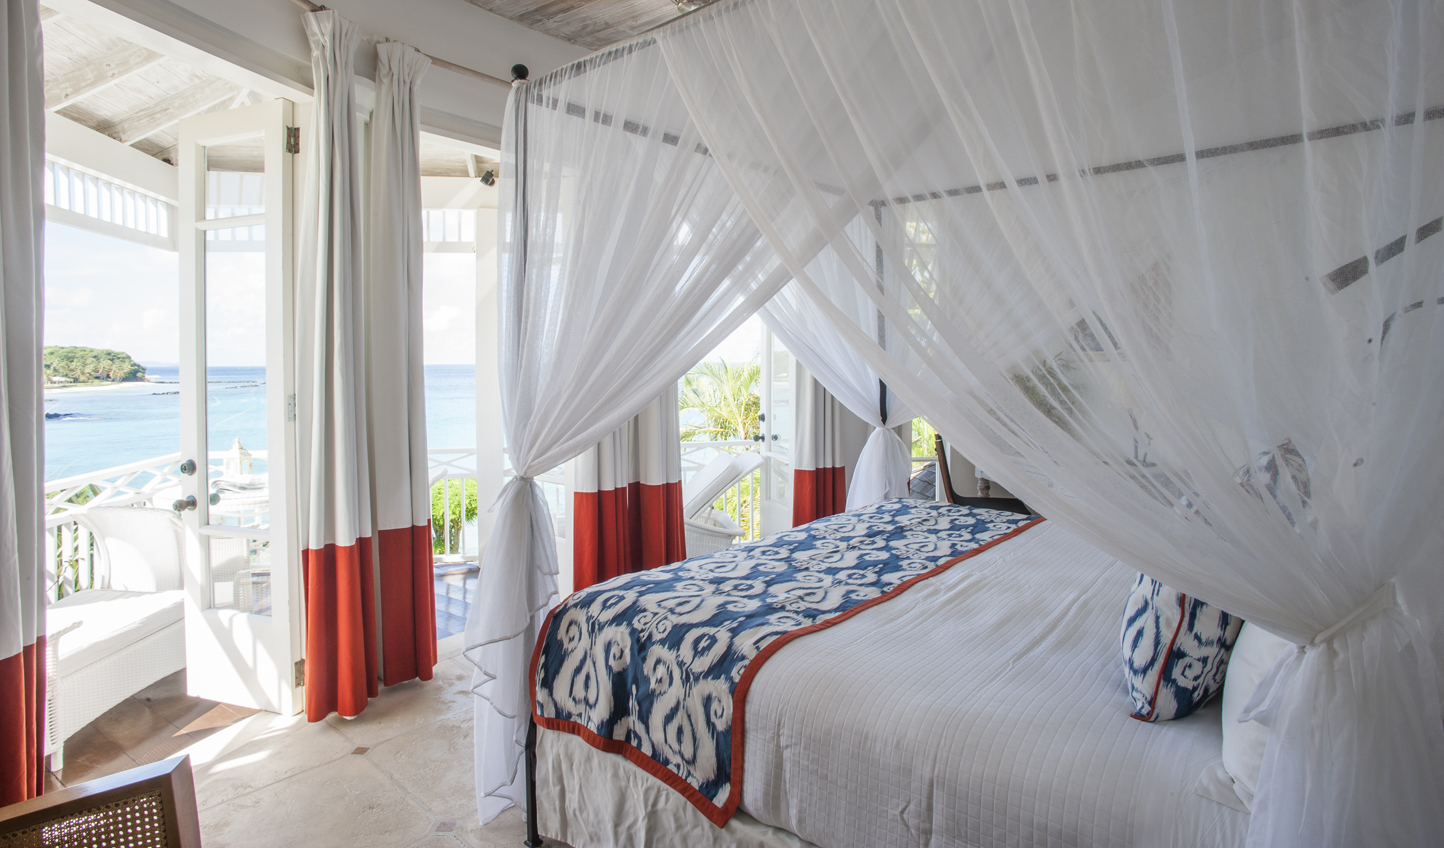 Breathtaking seaviews to wake up to